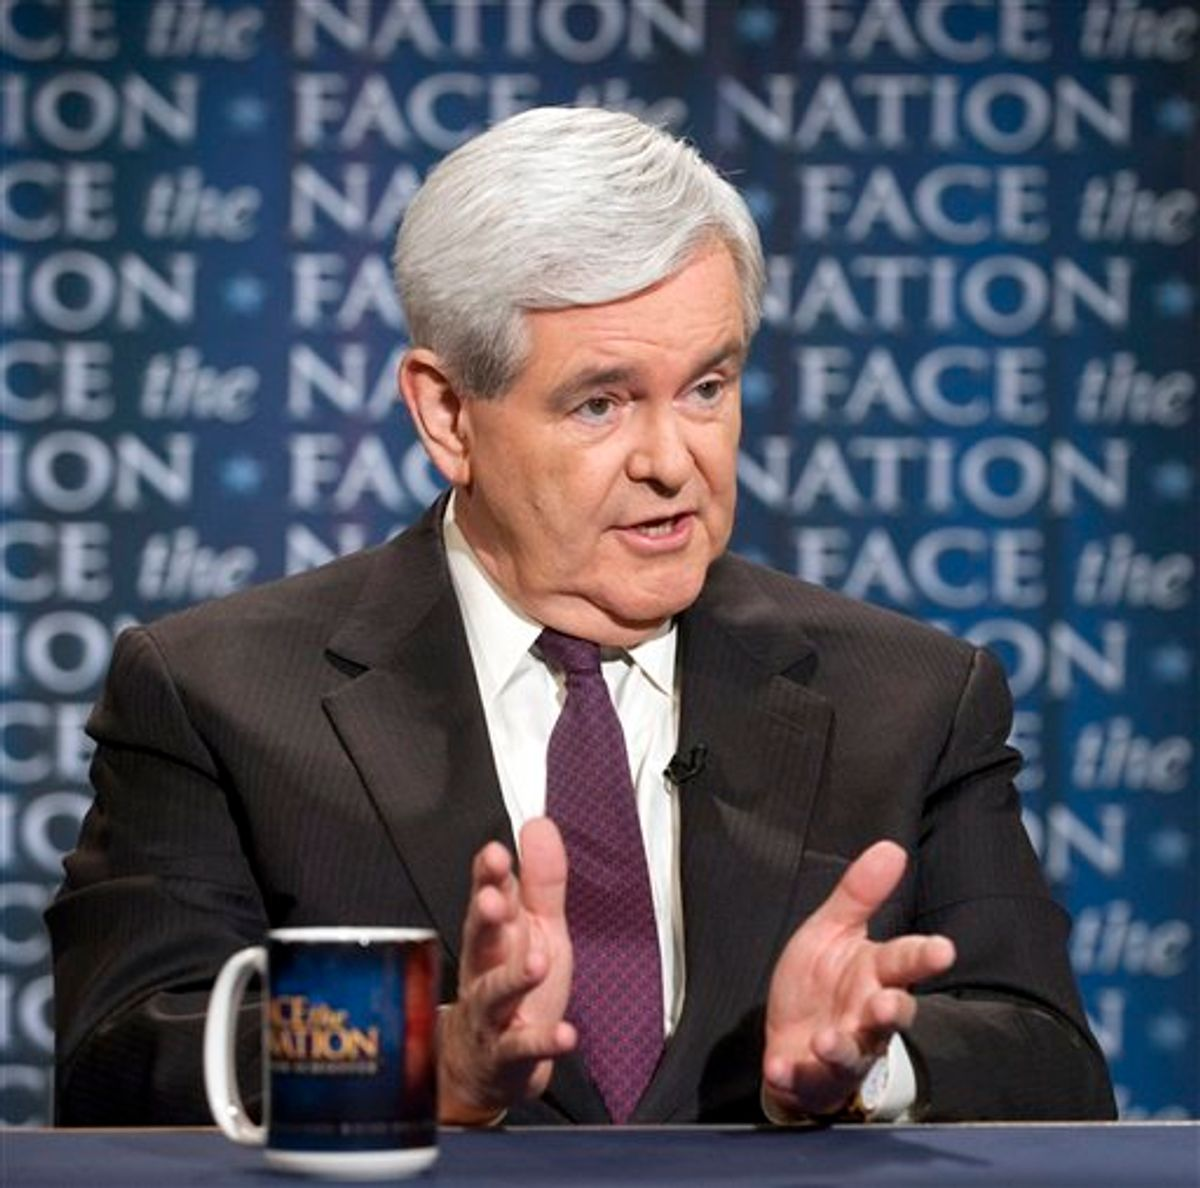 """In this photo provided by CBS News, former House Speaker and Republican  presidential candidate Newt Gingrich gestures as he speaks with host Bob Schieffer, not shown, on CBS-TV's """"Face the Nation,"""" Sunday, May 22, 2011, in Washington D.C. (AP Photo/CBS News, Chris Usher) (AP)"""